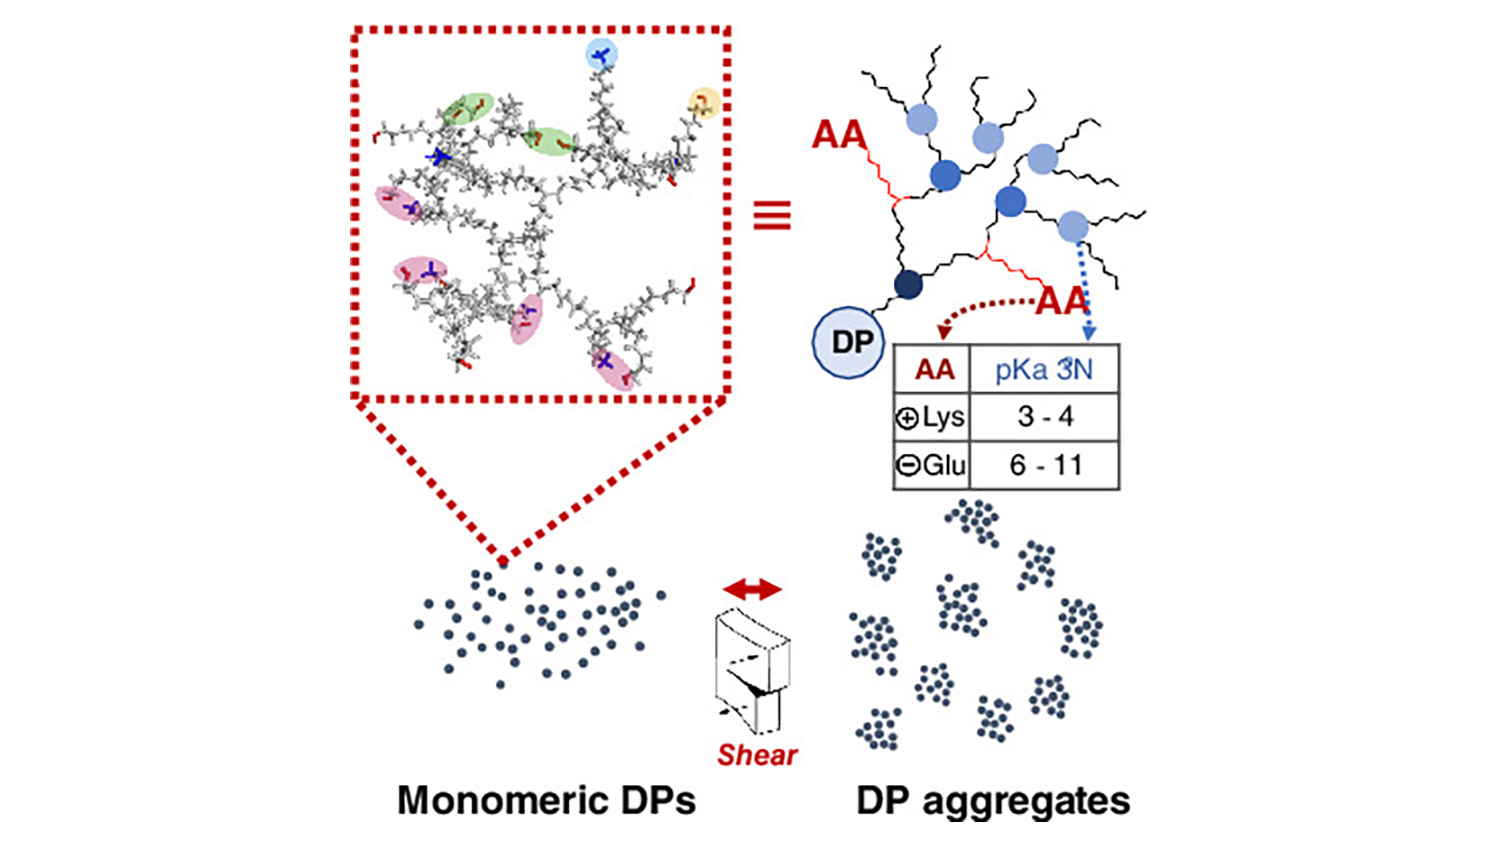 Graphic reprresentation of the work showcasing Monoeric DPs and DP aggregates